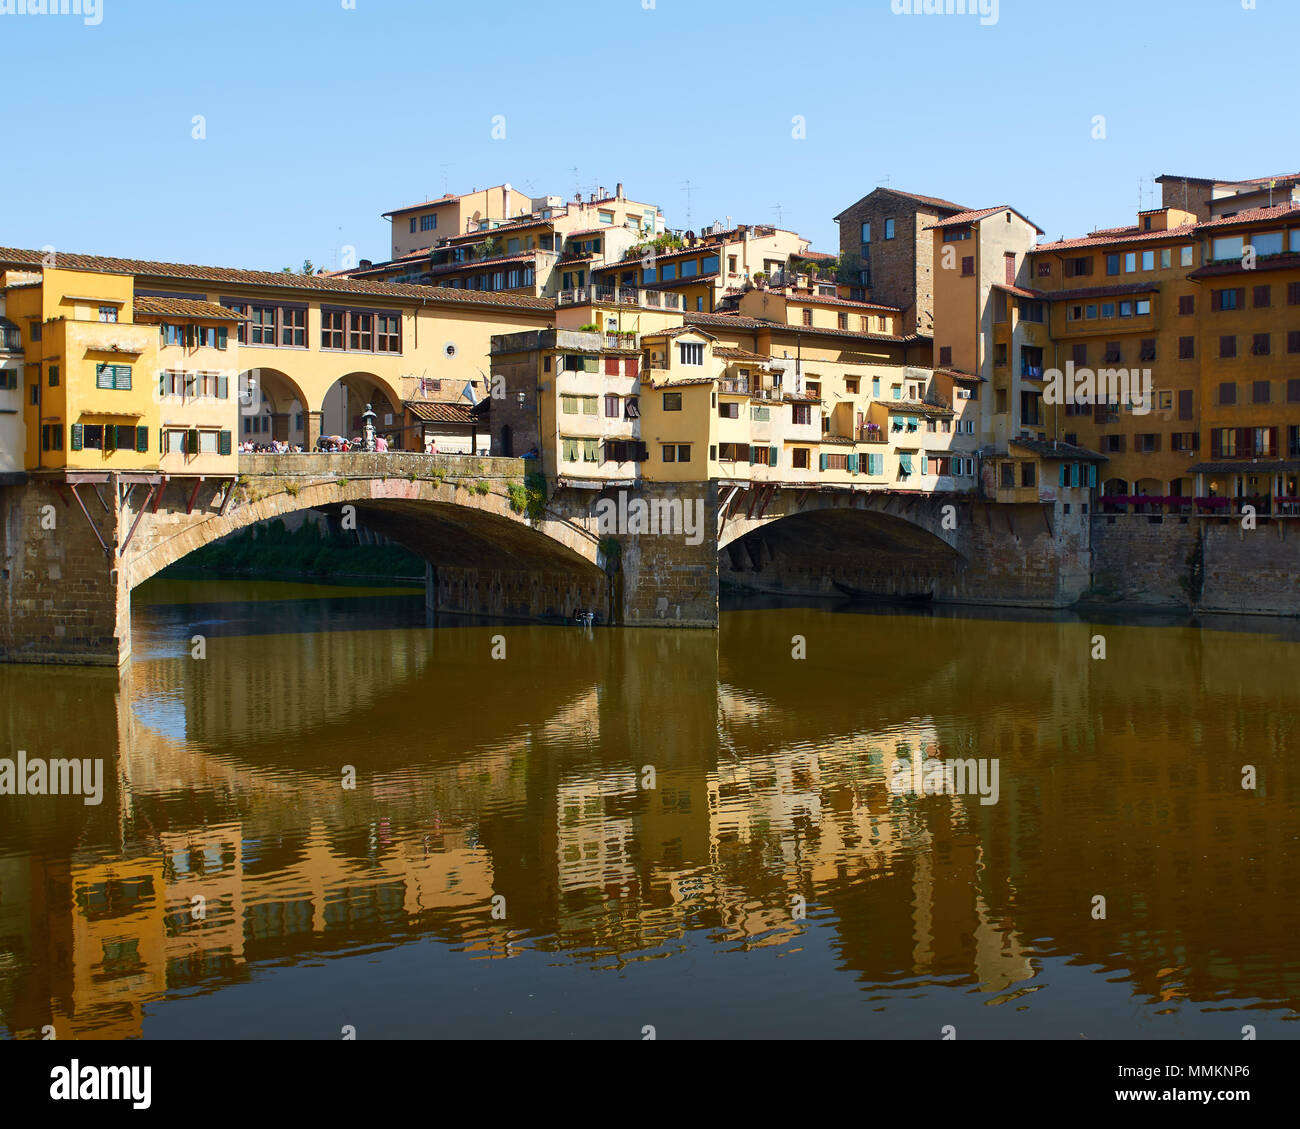 Ponte Vecchio Reflection, Florence, Italy - Stock Image